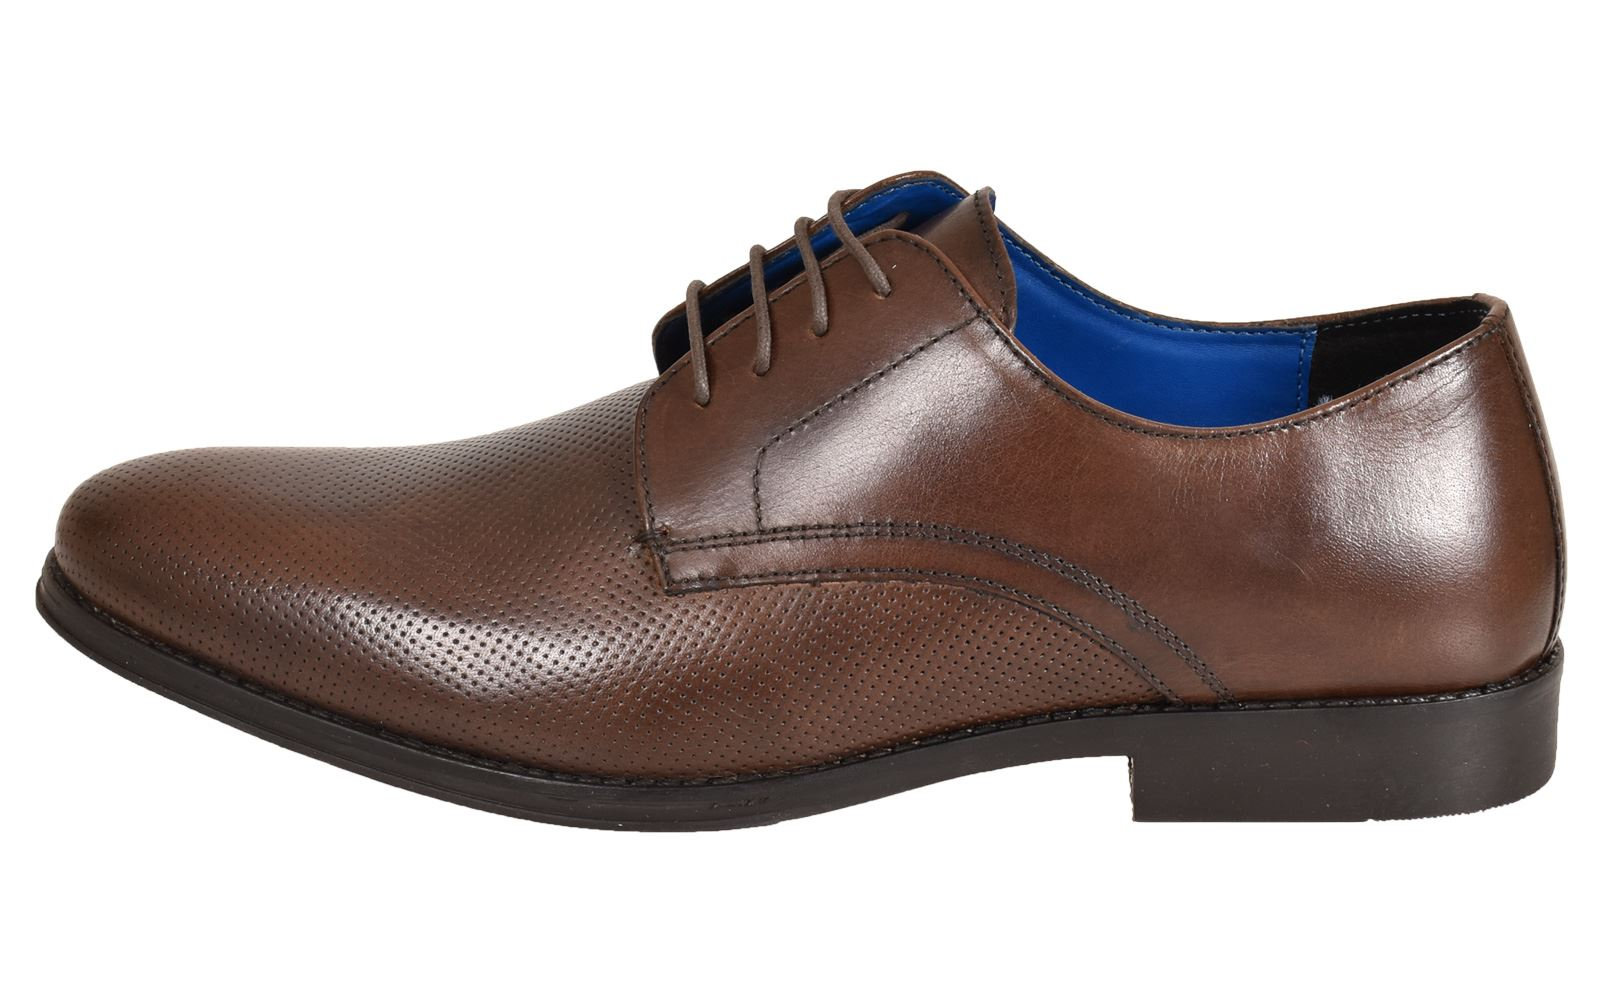 Mens-UK-Style-Leather-Lining-Formal-Office-Wedding-Smart-Work-Brogue-Shoes thumbnail 45